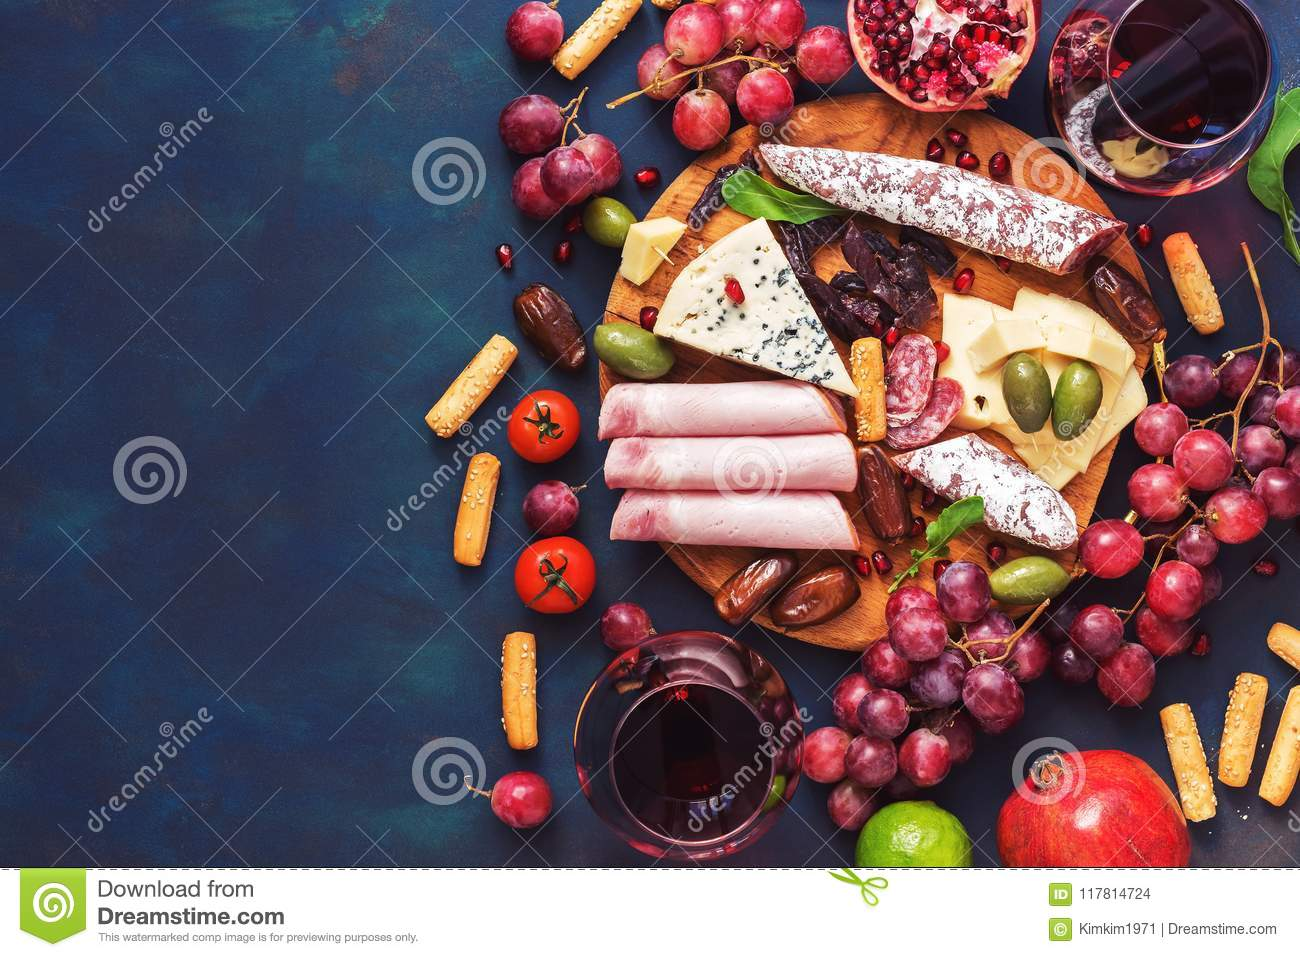 Various appetizer-red wine, fruits,sausages,cheese, vegetables on a dark finem background. Copy space, top view.